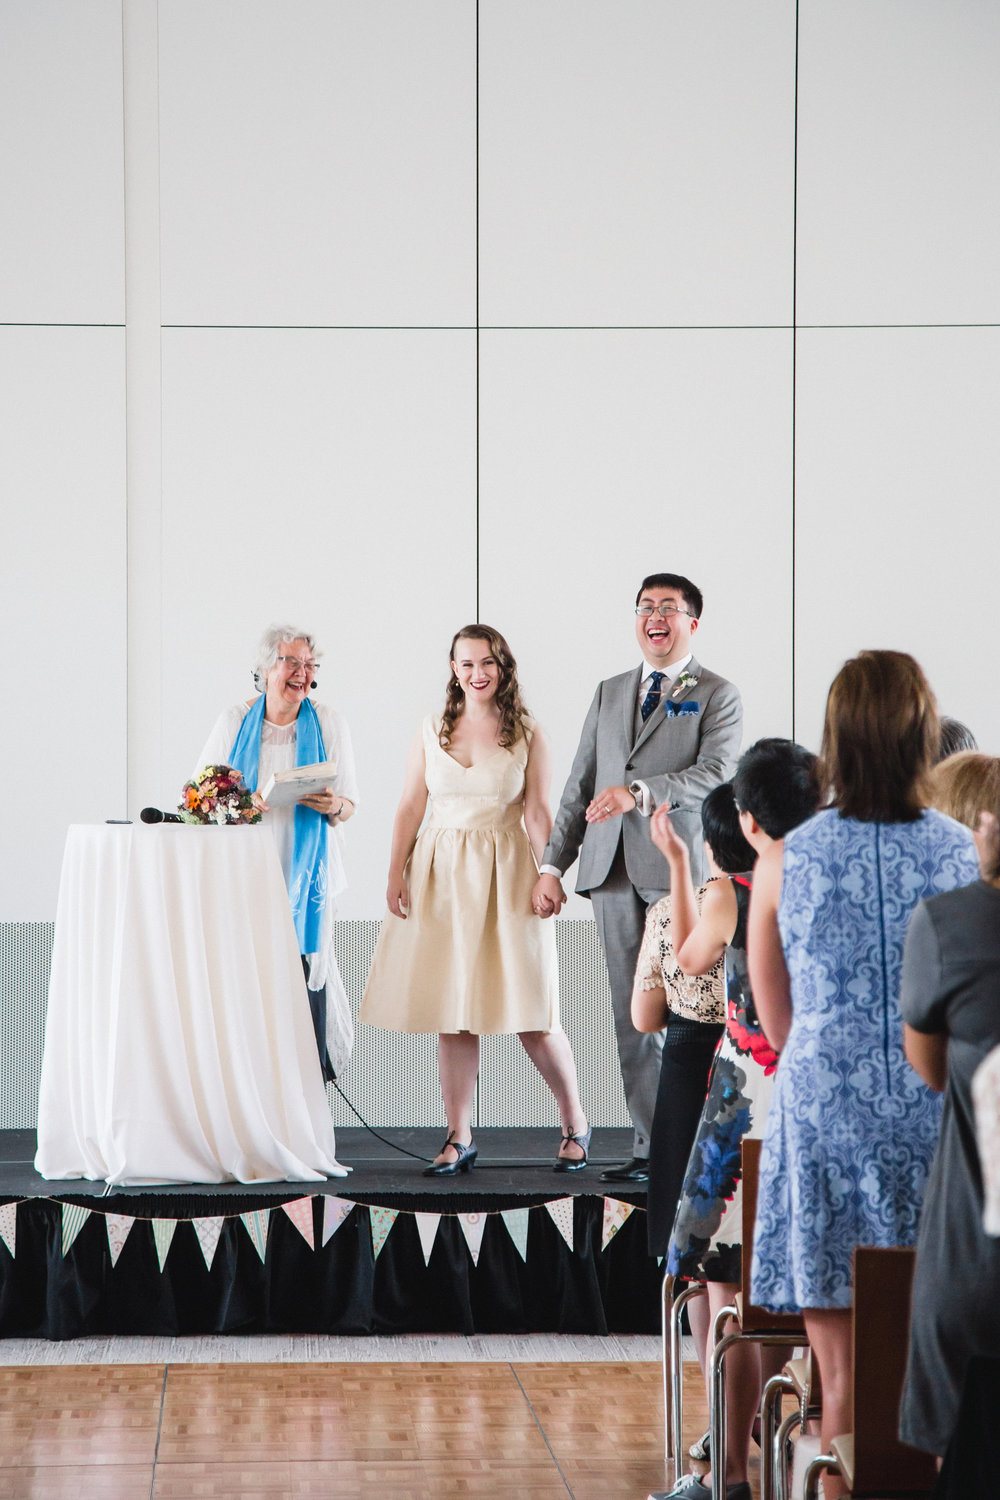 MODERN WEDDING AT UBC ALUMNI CENTRE | VANCOUVER, BC